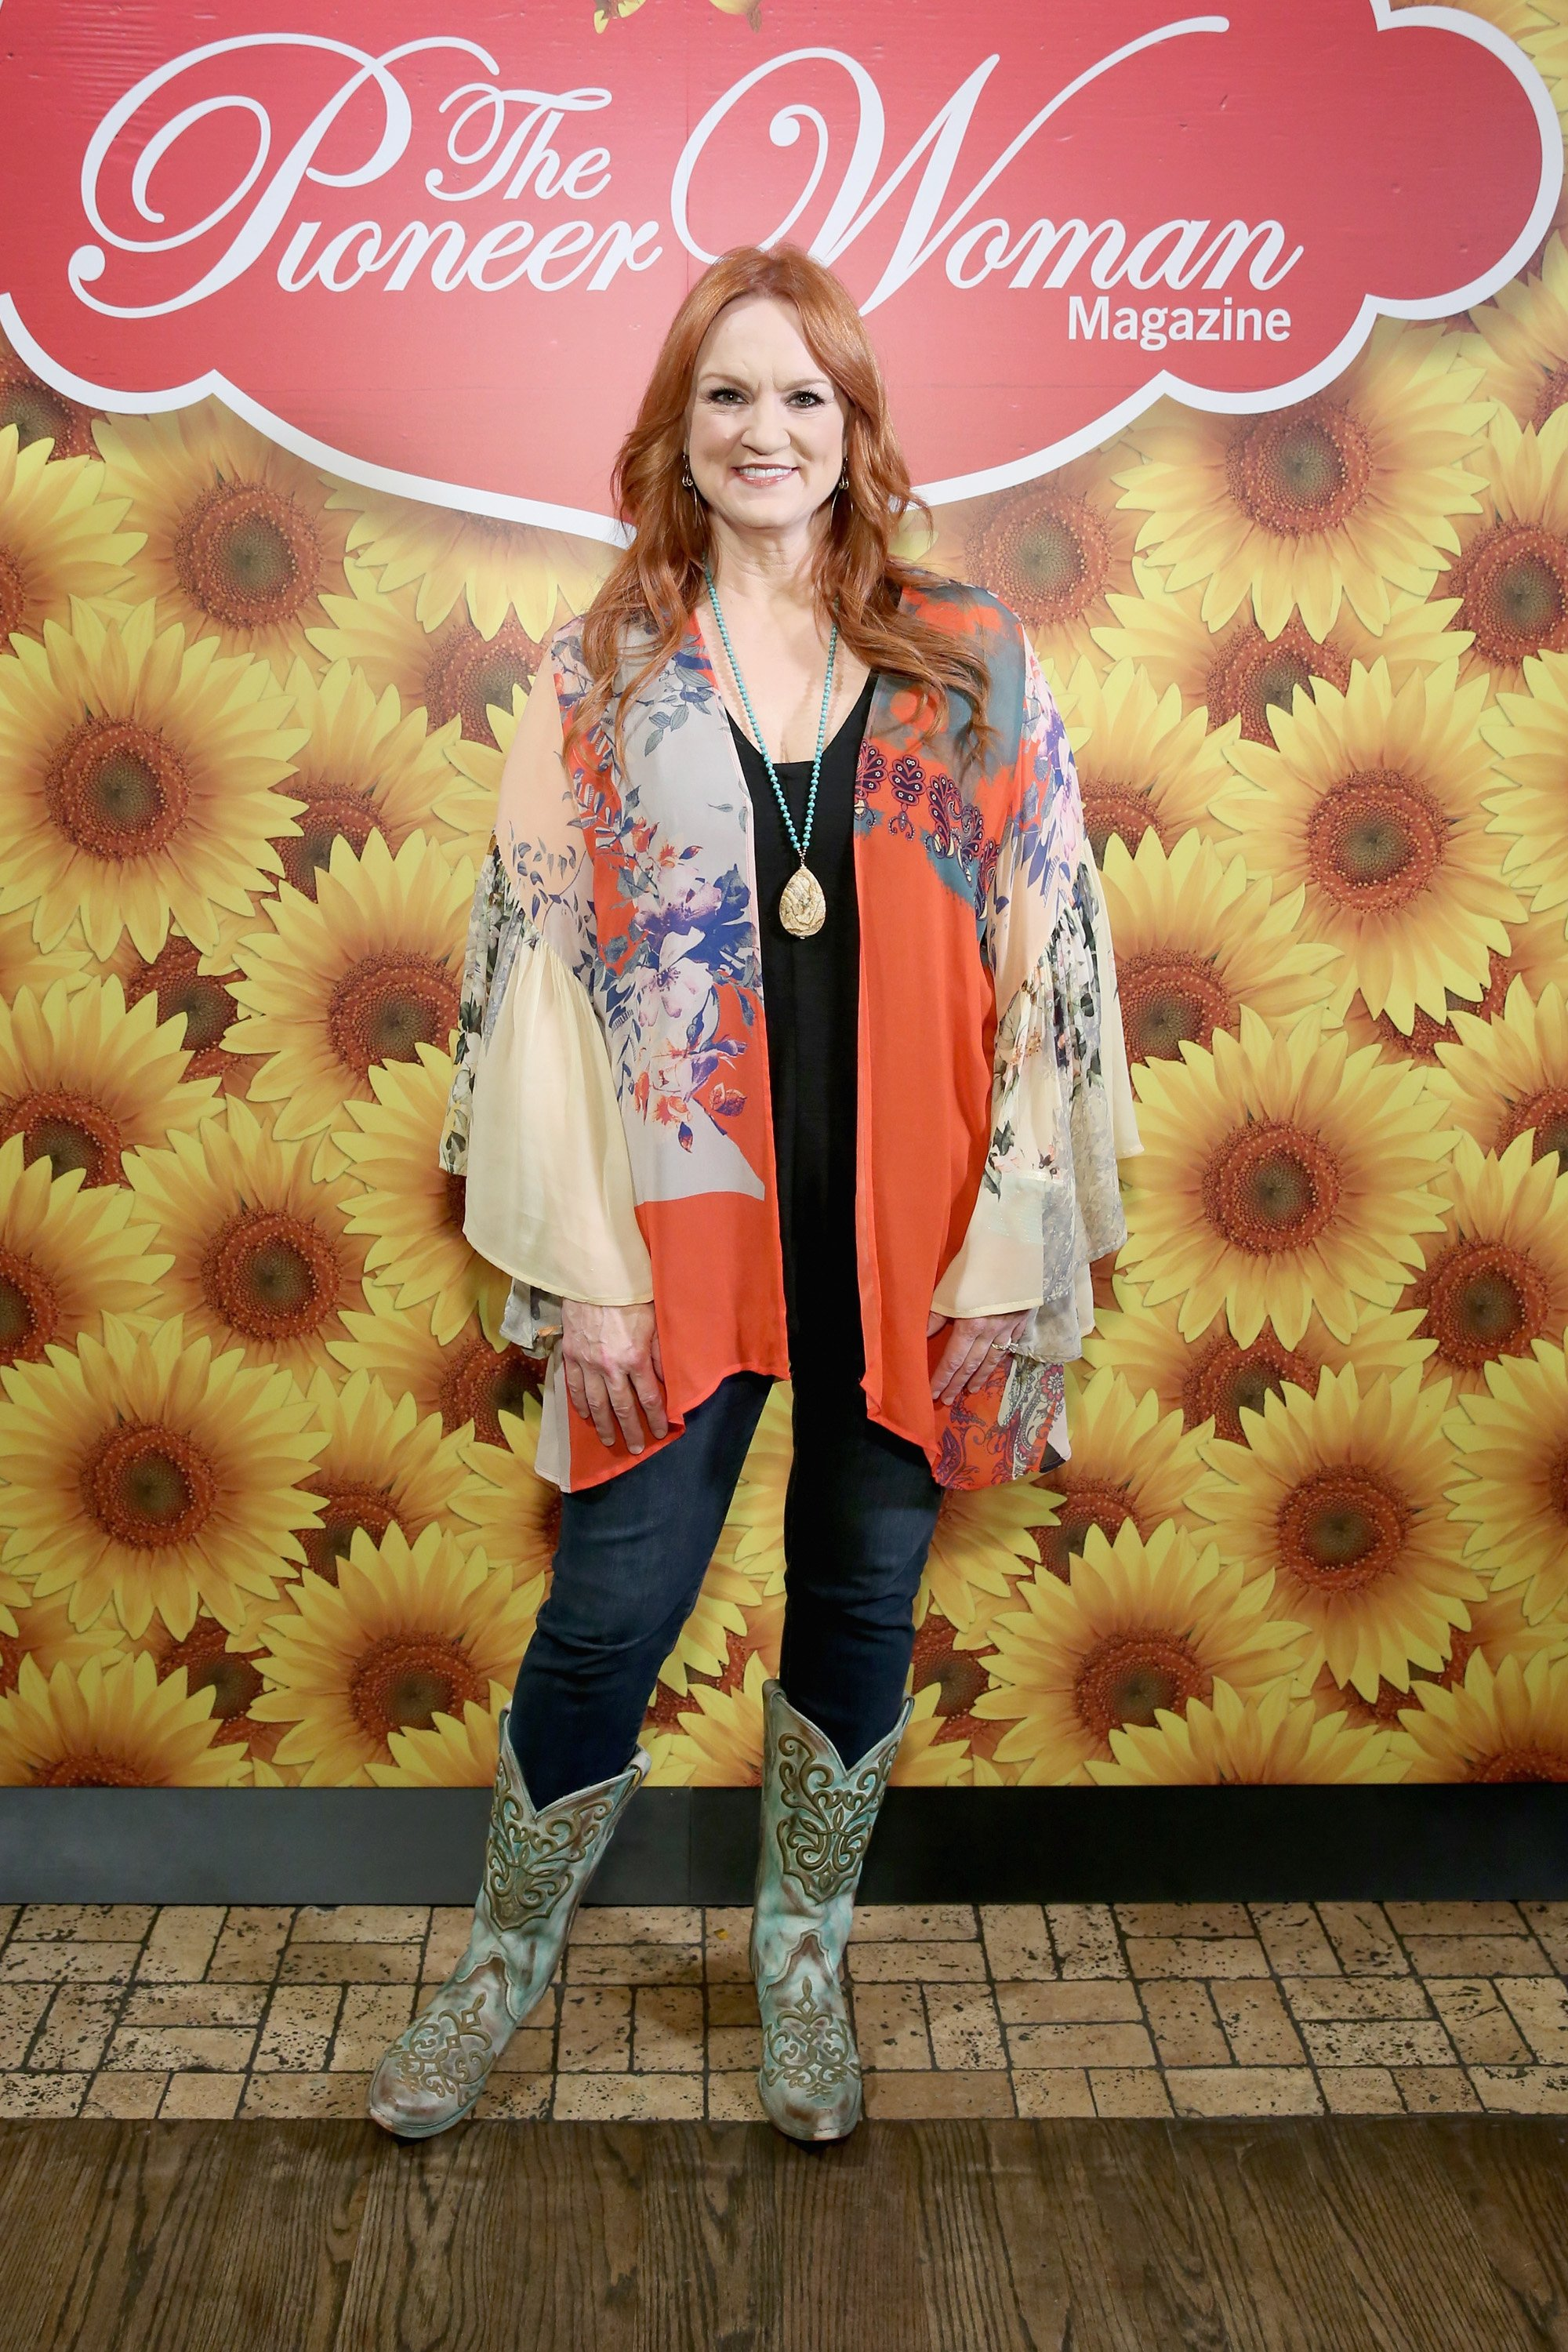 Ree Drummond attends The Pioneer Woman Magazine Celebration at The Mason Jar on June 6, 2017 in New York City | Photo: Getty Images